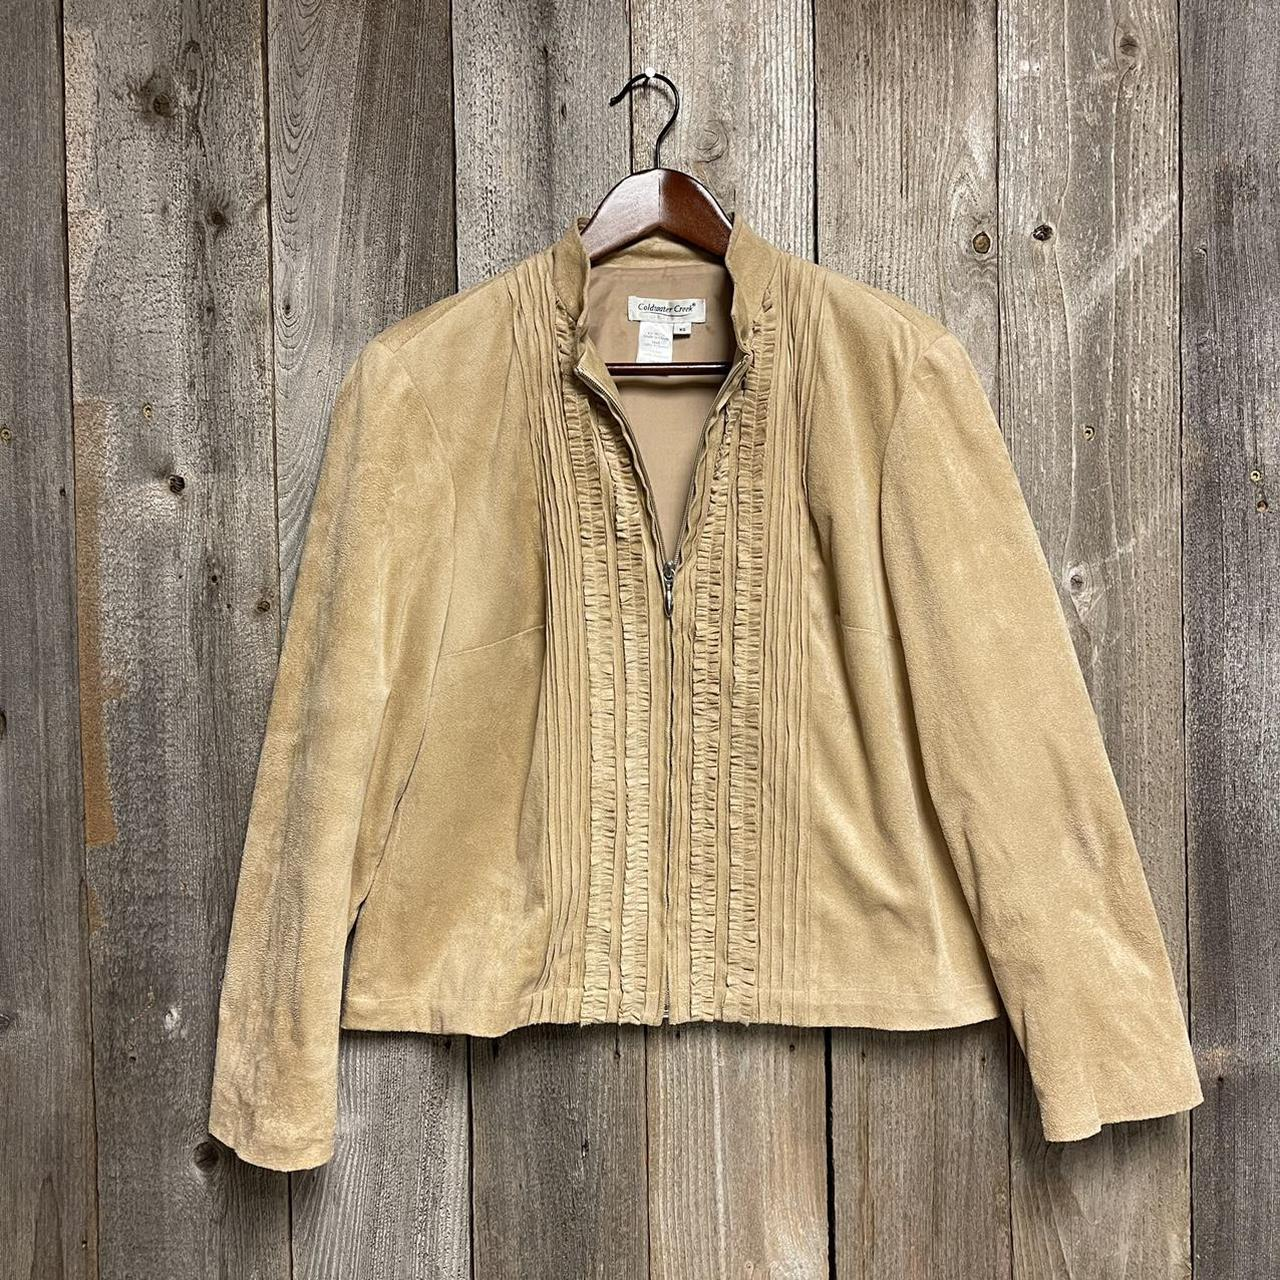 Product Image 1 - Item: Adorable tan sueded jacket!